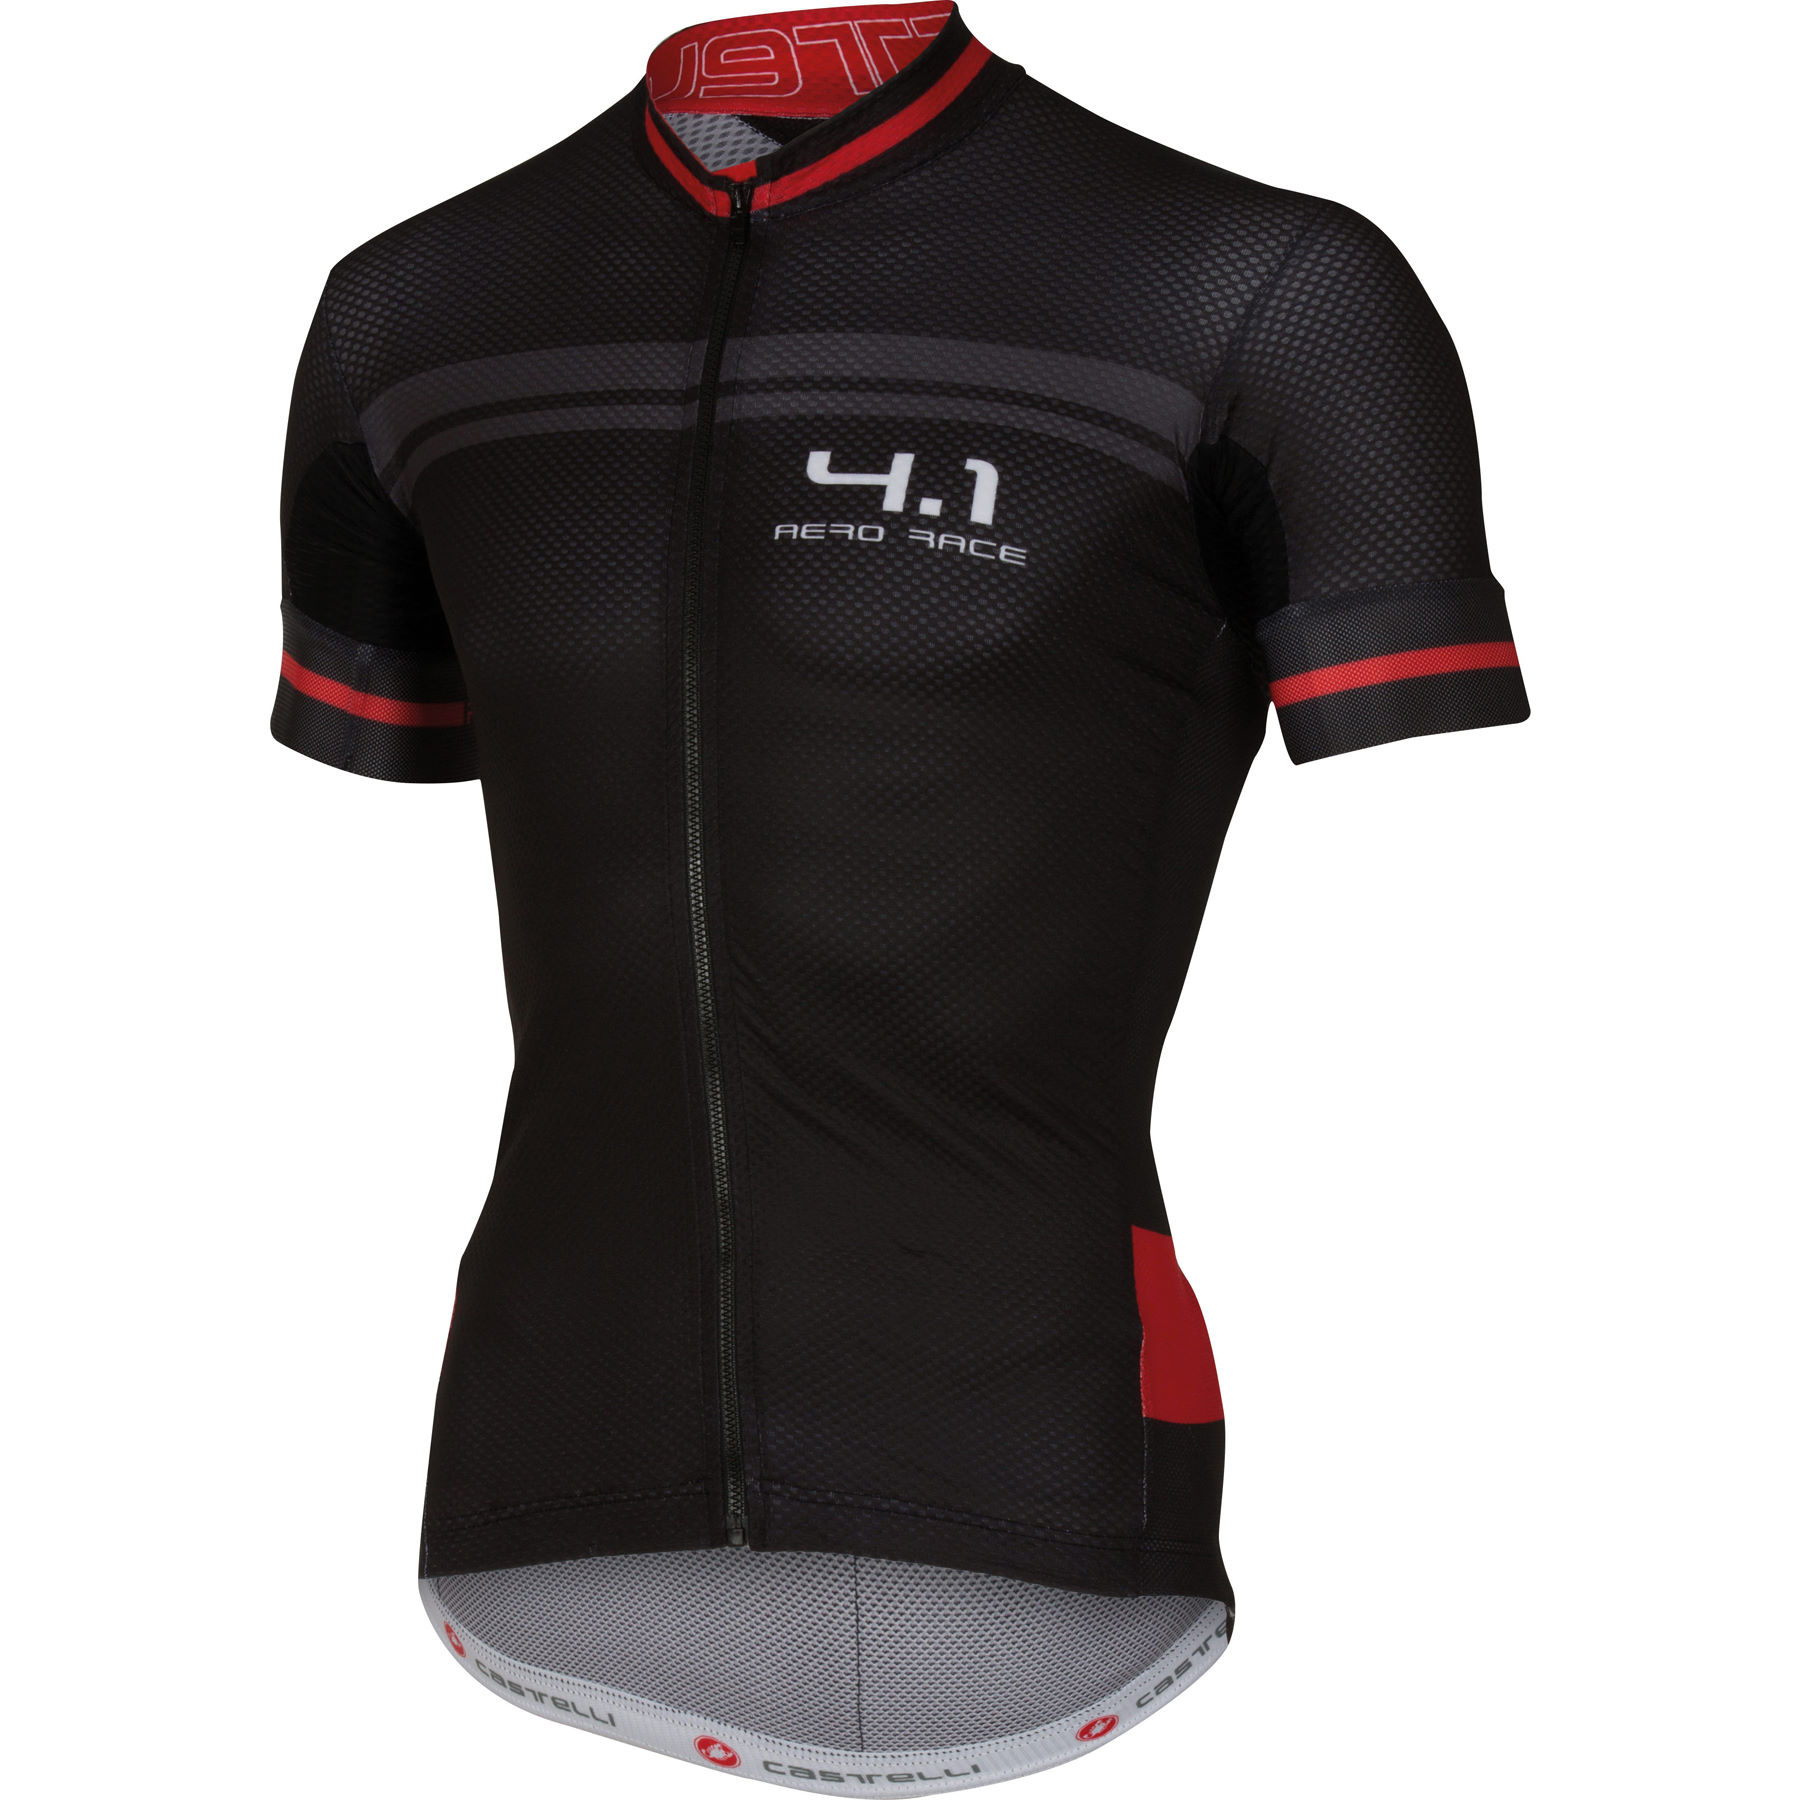 f5ba31e24 Castelli Aero Race 5 Short Sleeve Jersey Short Sleeve